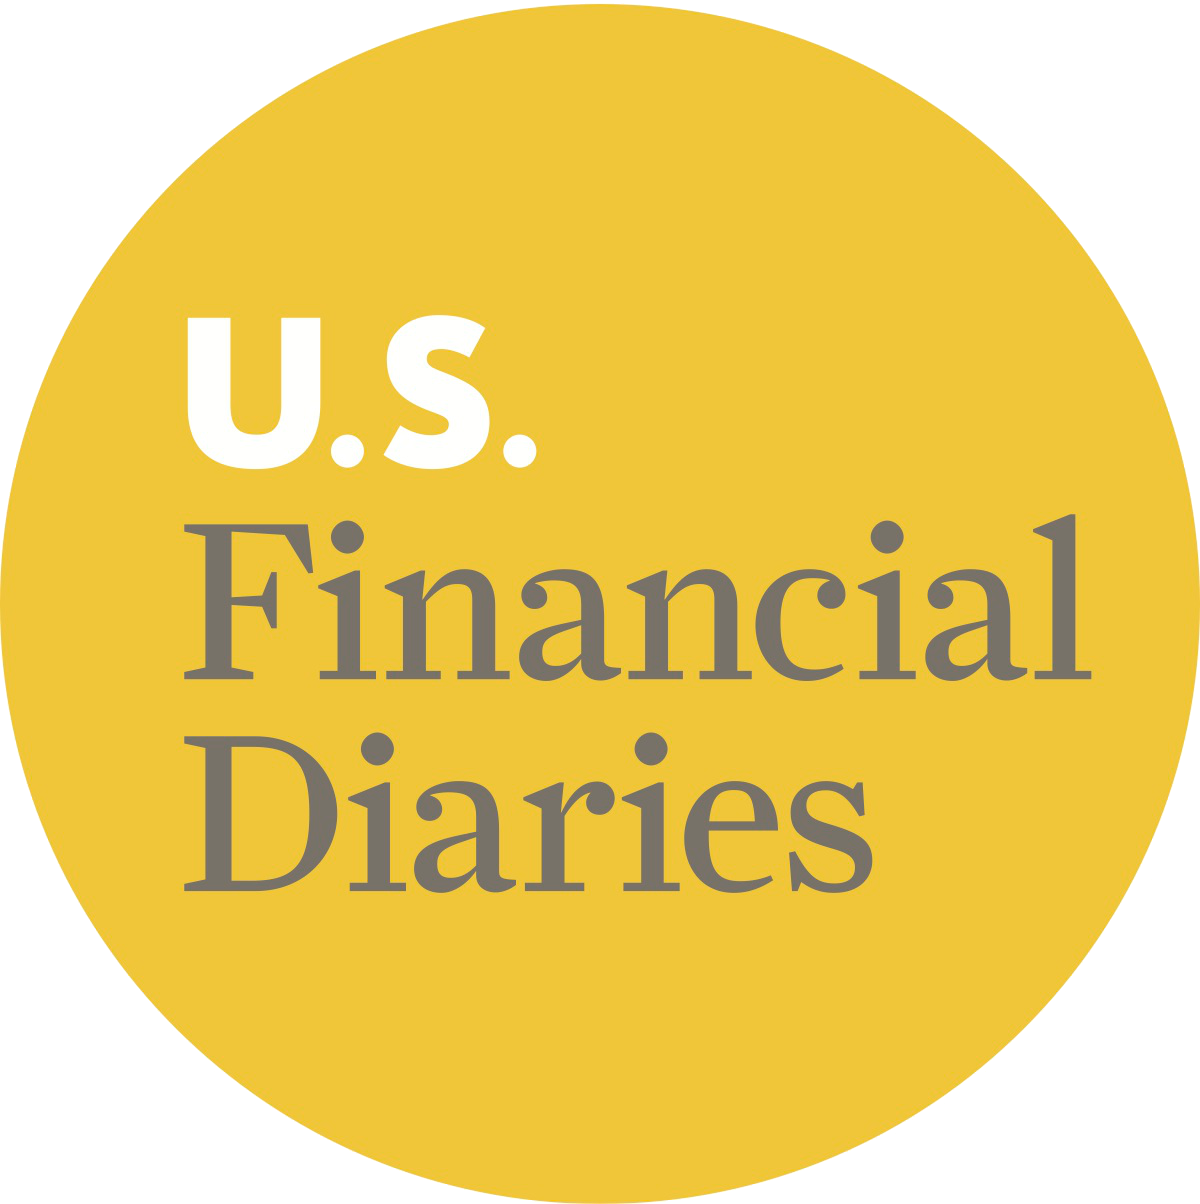 US Financial Diaries Logo